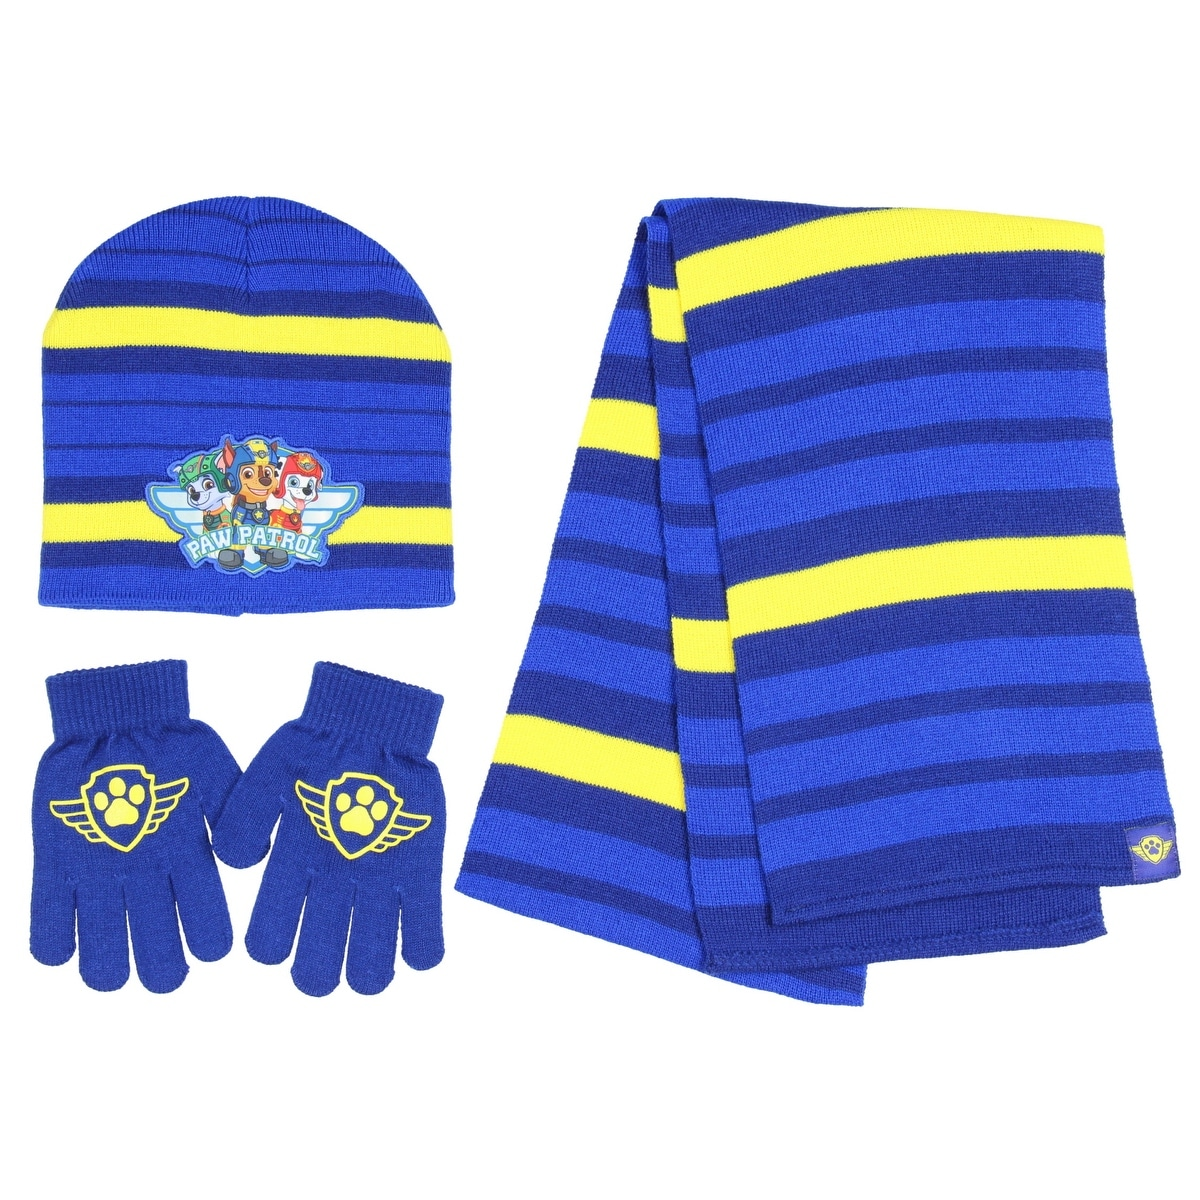 f04cf4d223fe2 Shop Nickelodeon Paw Patrol Boys Winter 3pc Set Hat Gloves and Scarf Blue  OSFM - Free Shipping On Orders Over $45 - Overstock - 19448153